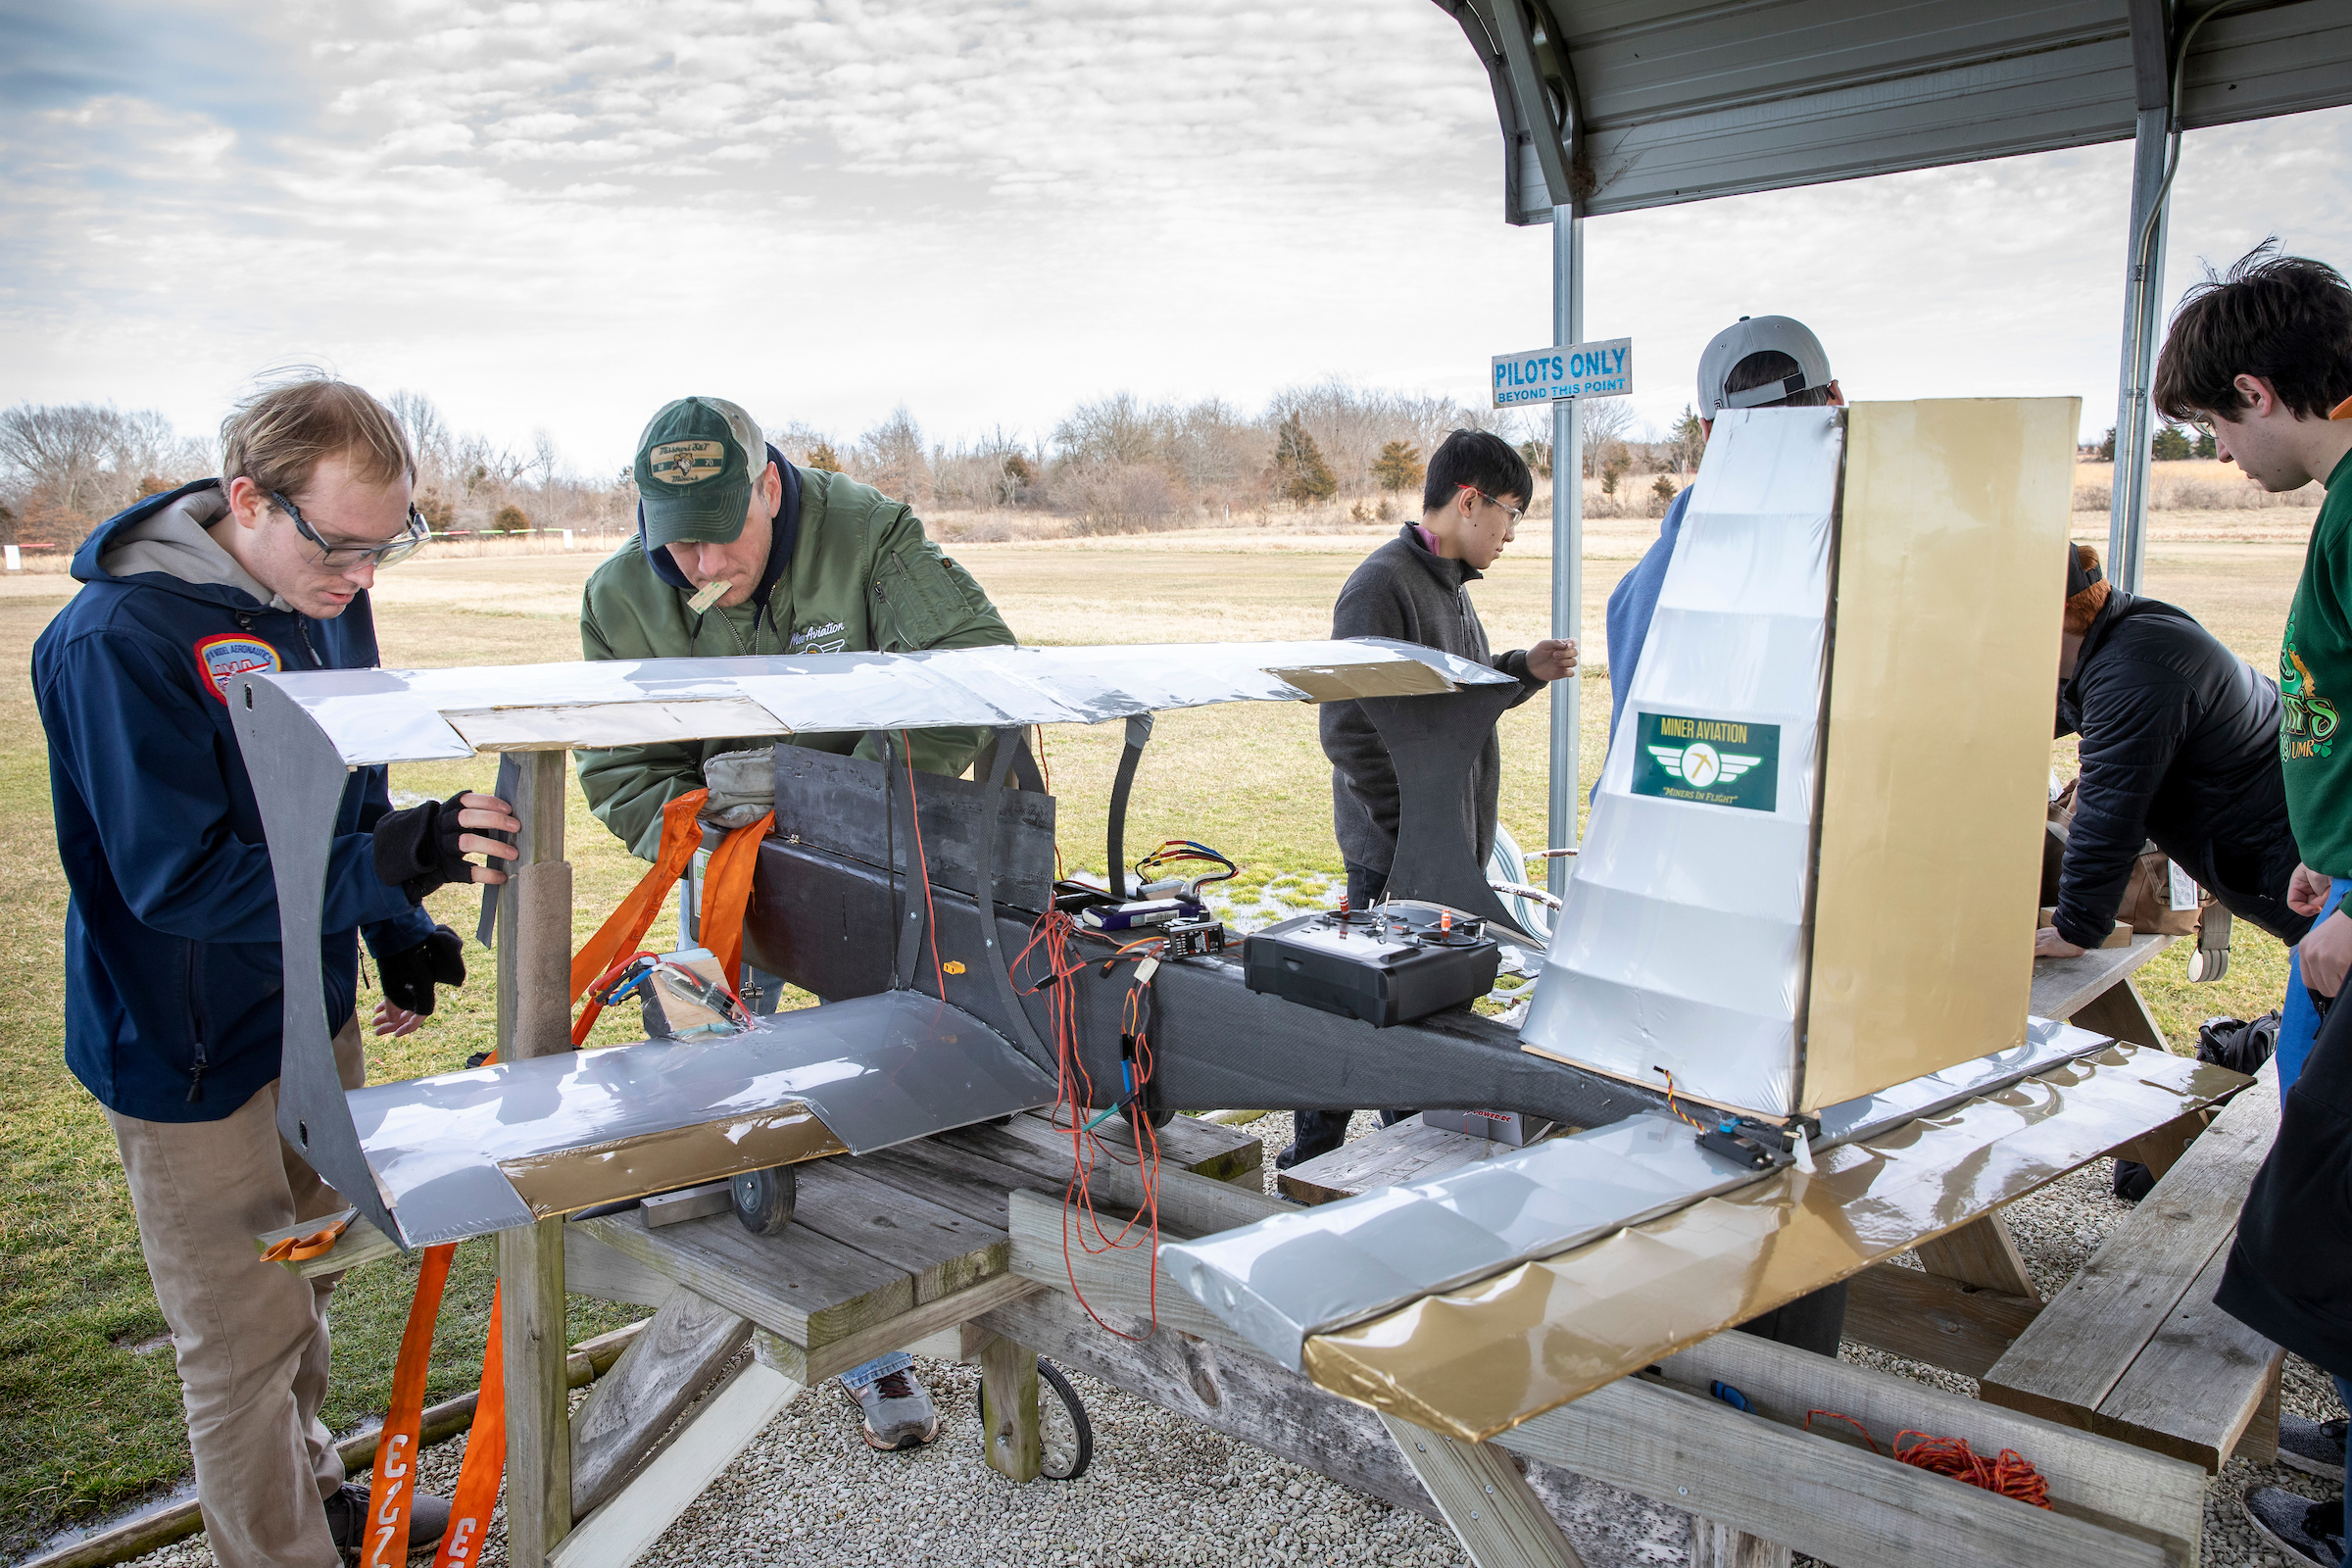 Photo Tom Wagner/Missouri S&T, Students of the Miner Aviation Design team prepare a prototype version of their 2020 aircraft at the Rolla RC airfield, Vichy, MO. The team is based out of the Student Design and Experimental Learning Center, SDELC, as Missouri S&T. ©2020 Tom Wagner/Missouri S&T. This image is copyrighted and all moral rights asserted by Missouri S&T Marketing and Communications Dept., Rolla, Missouri, USA